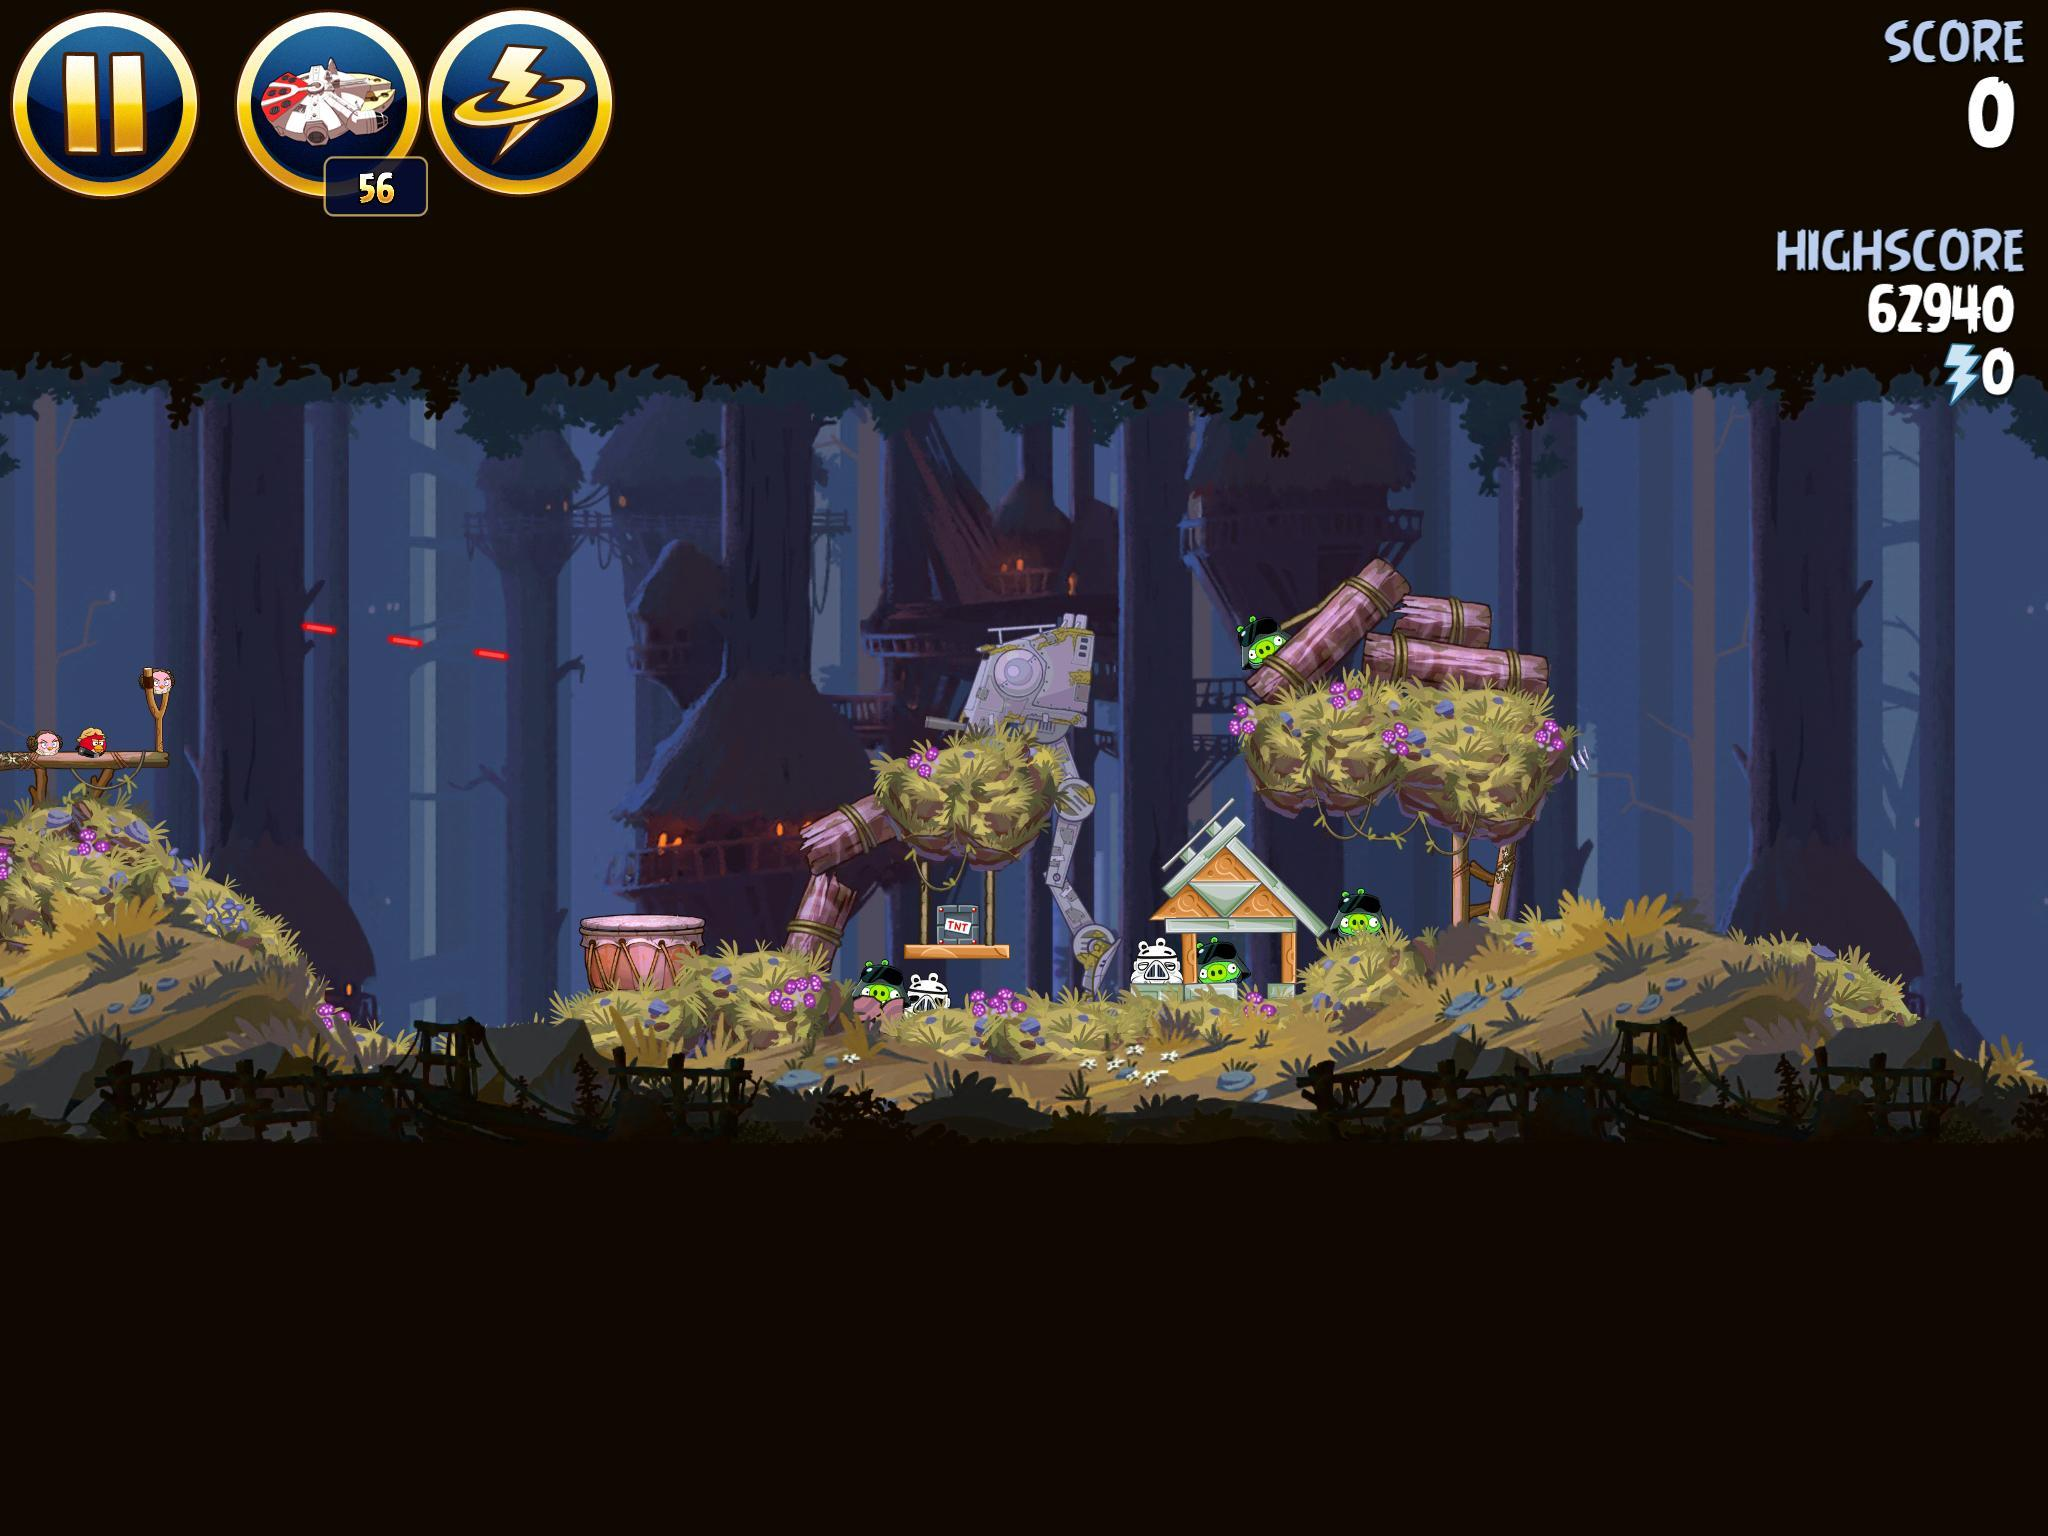 Moon of Endor 5-23 (Angry Birds Star Wars)